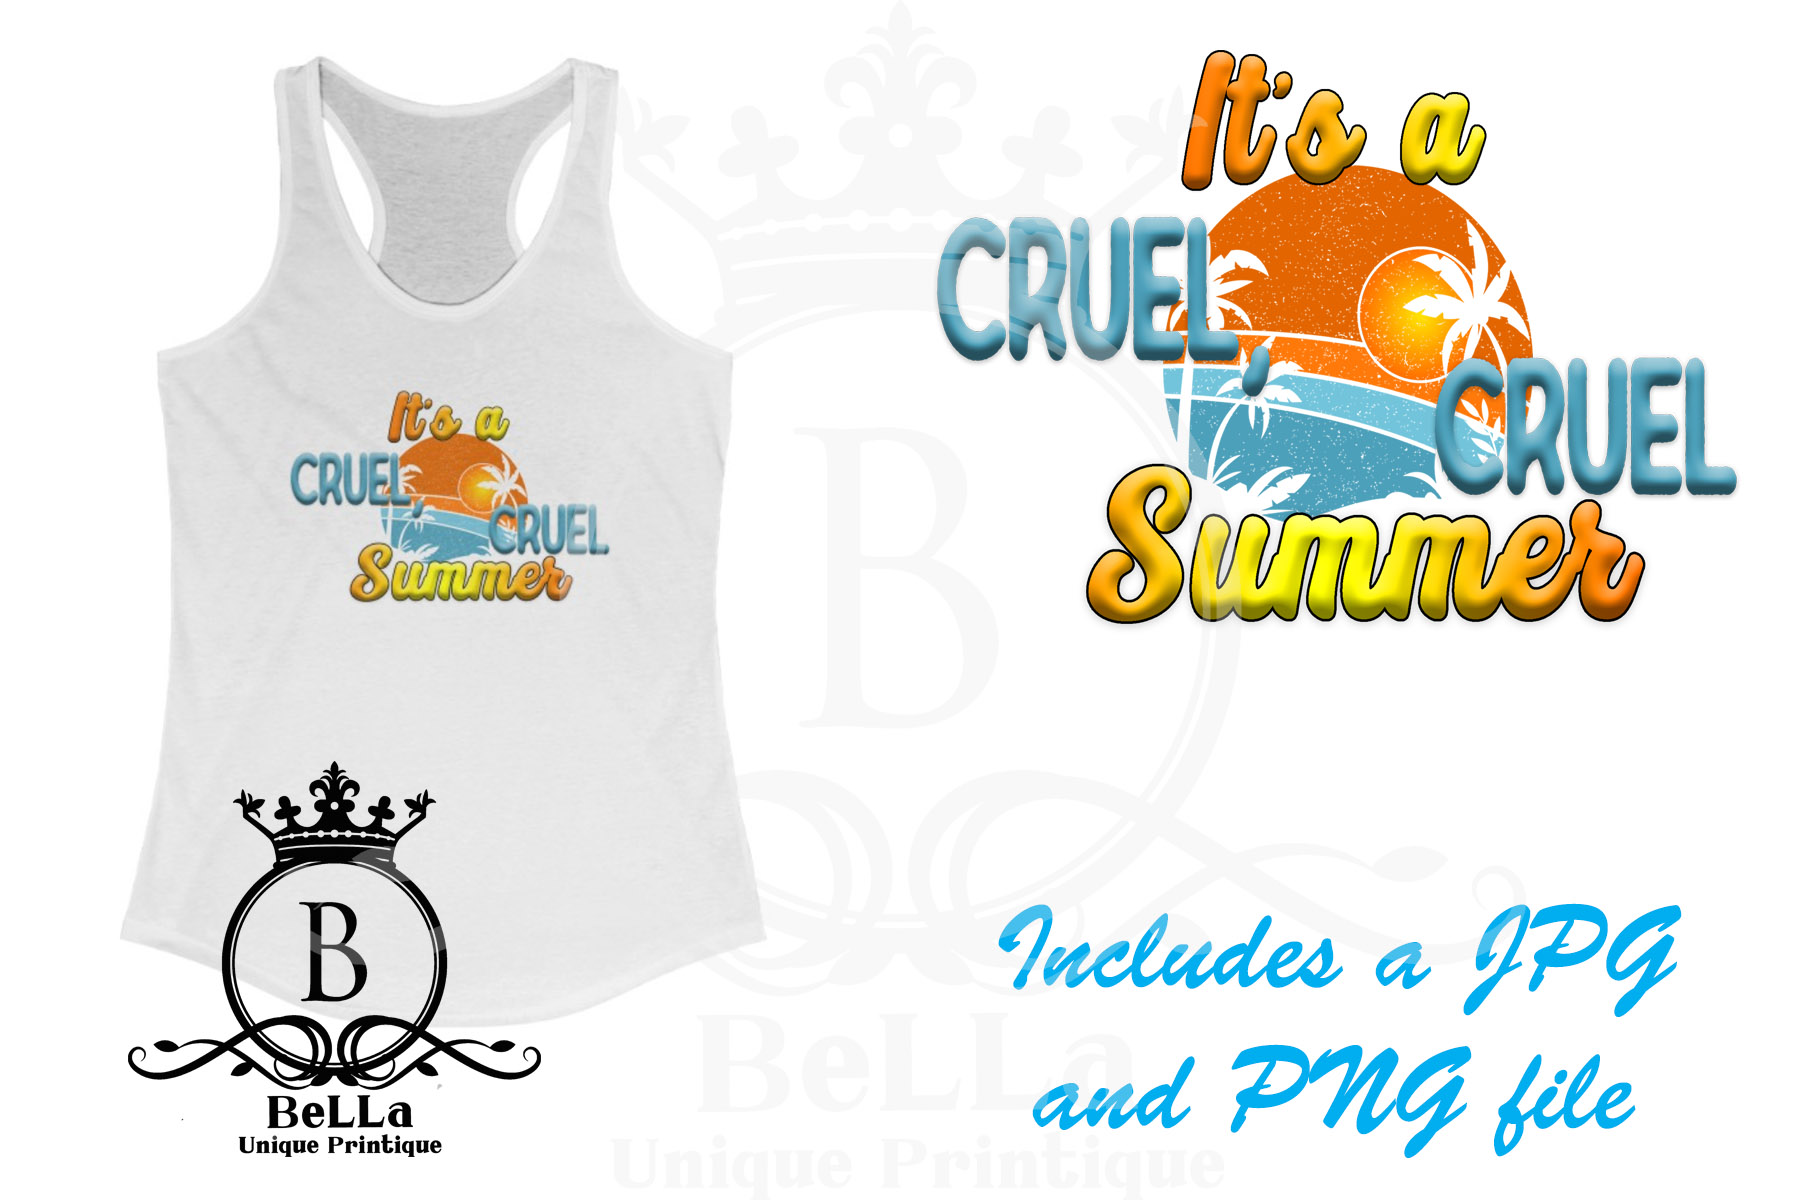 Download Free It S A Cruel Cruel Summer Graphic Graphic By for Cricut Explore, Silhouette and other cutting machines.